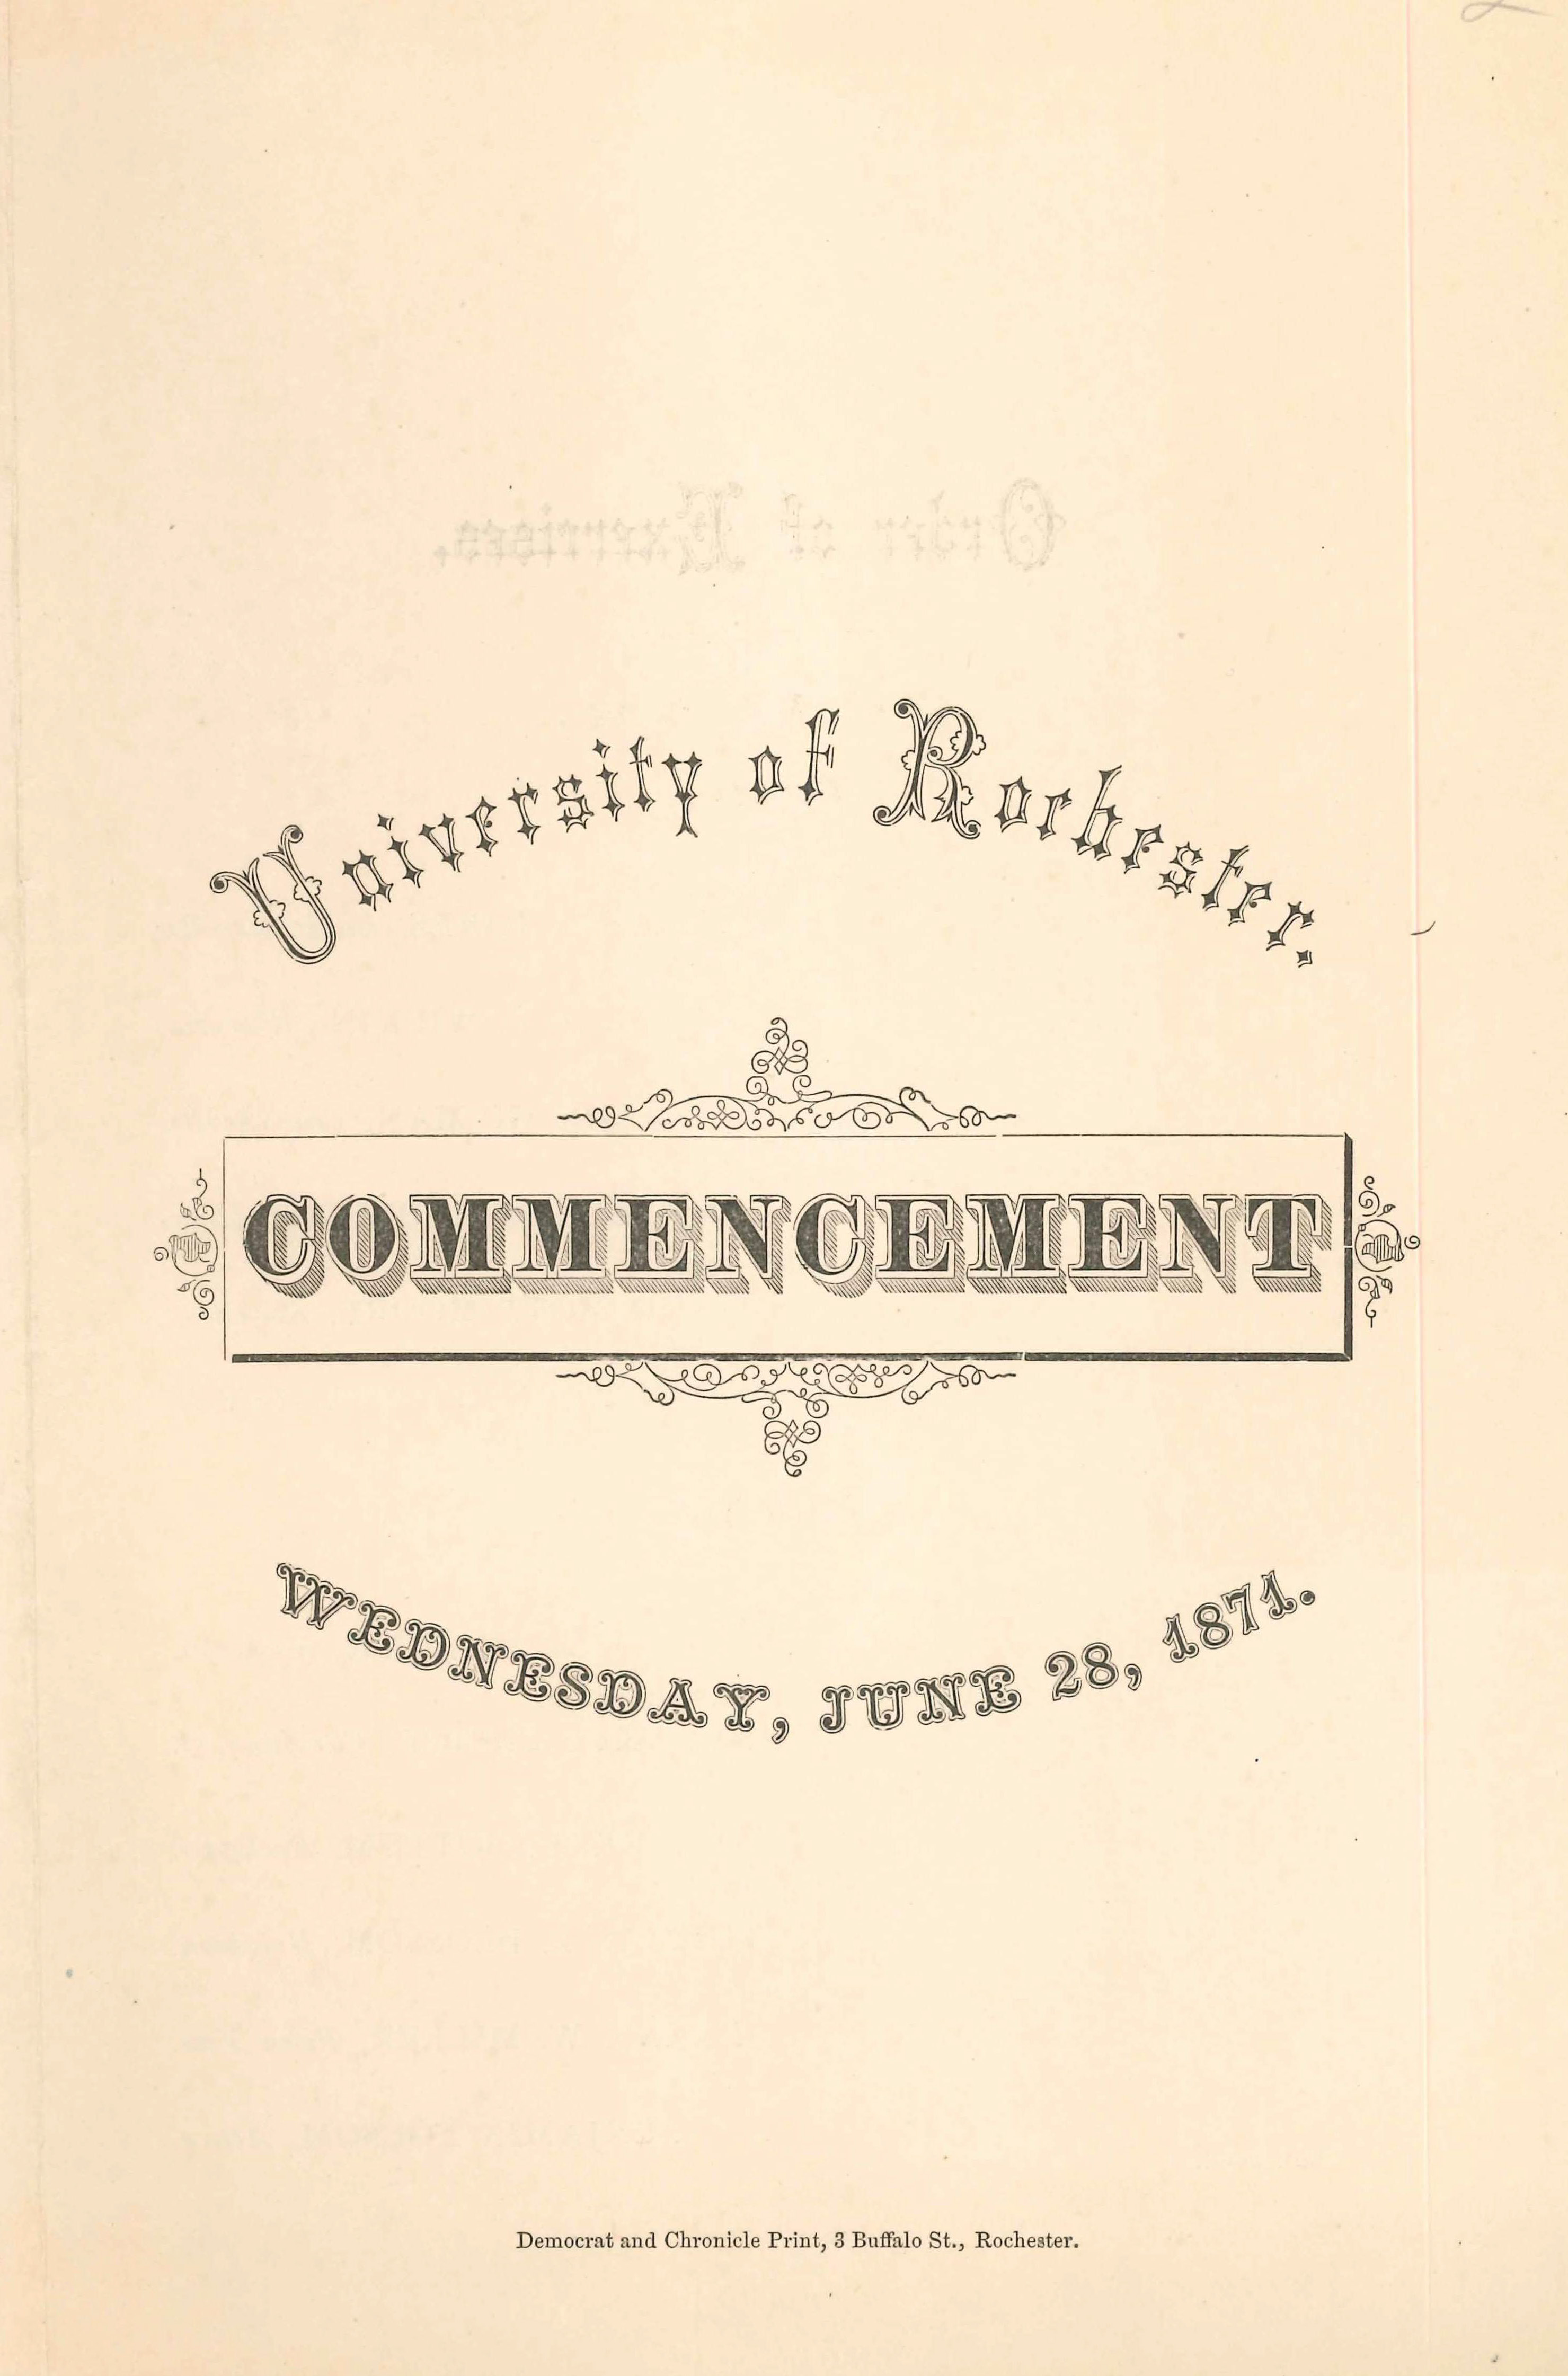 Commencement program, 1871